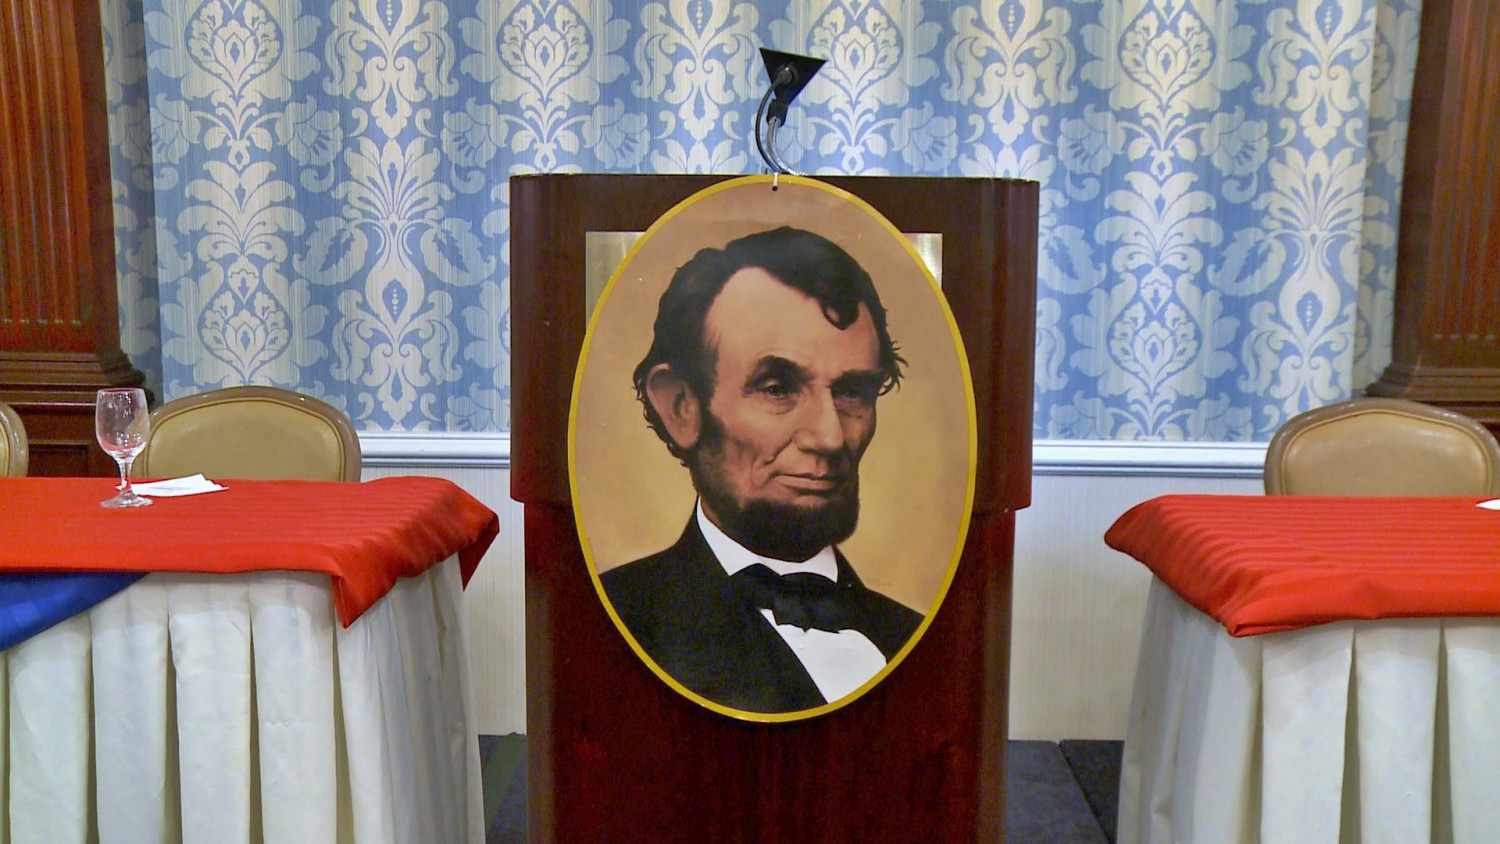 Podium at the 144th Anniversary Lincoln Dinner